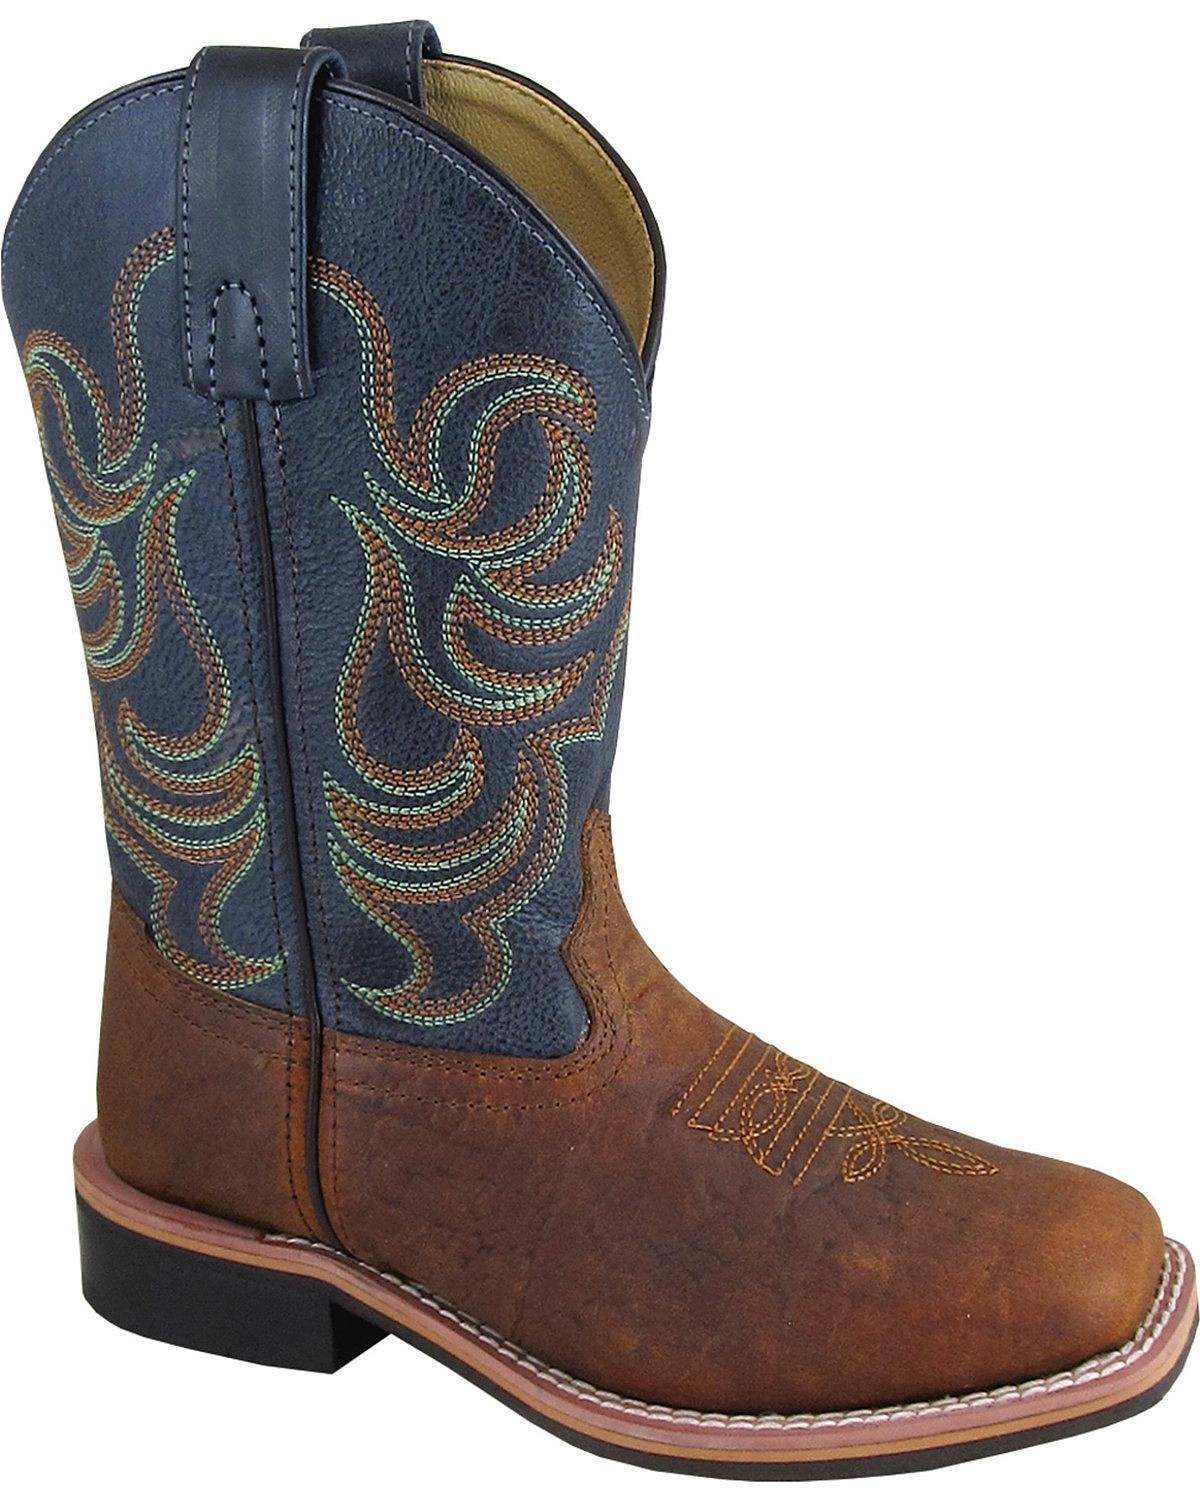 Smoky Mountain Boys' Jesse Bison Leather Print Boot Square Toe Brown 13 D